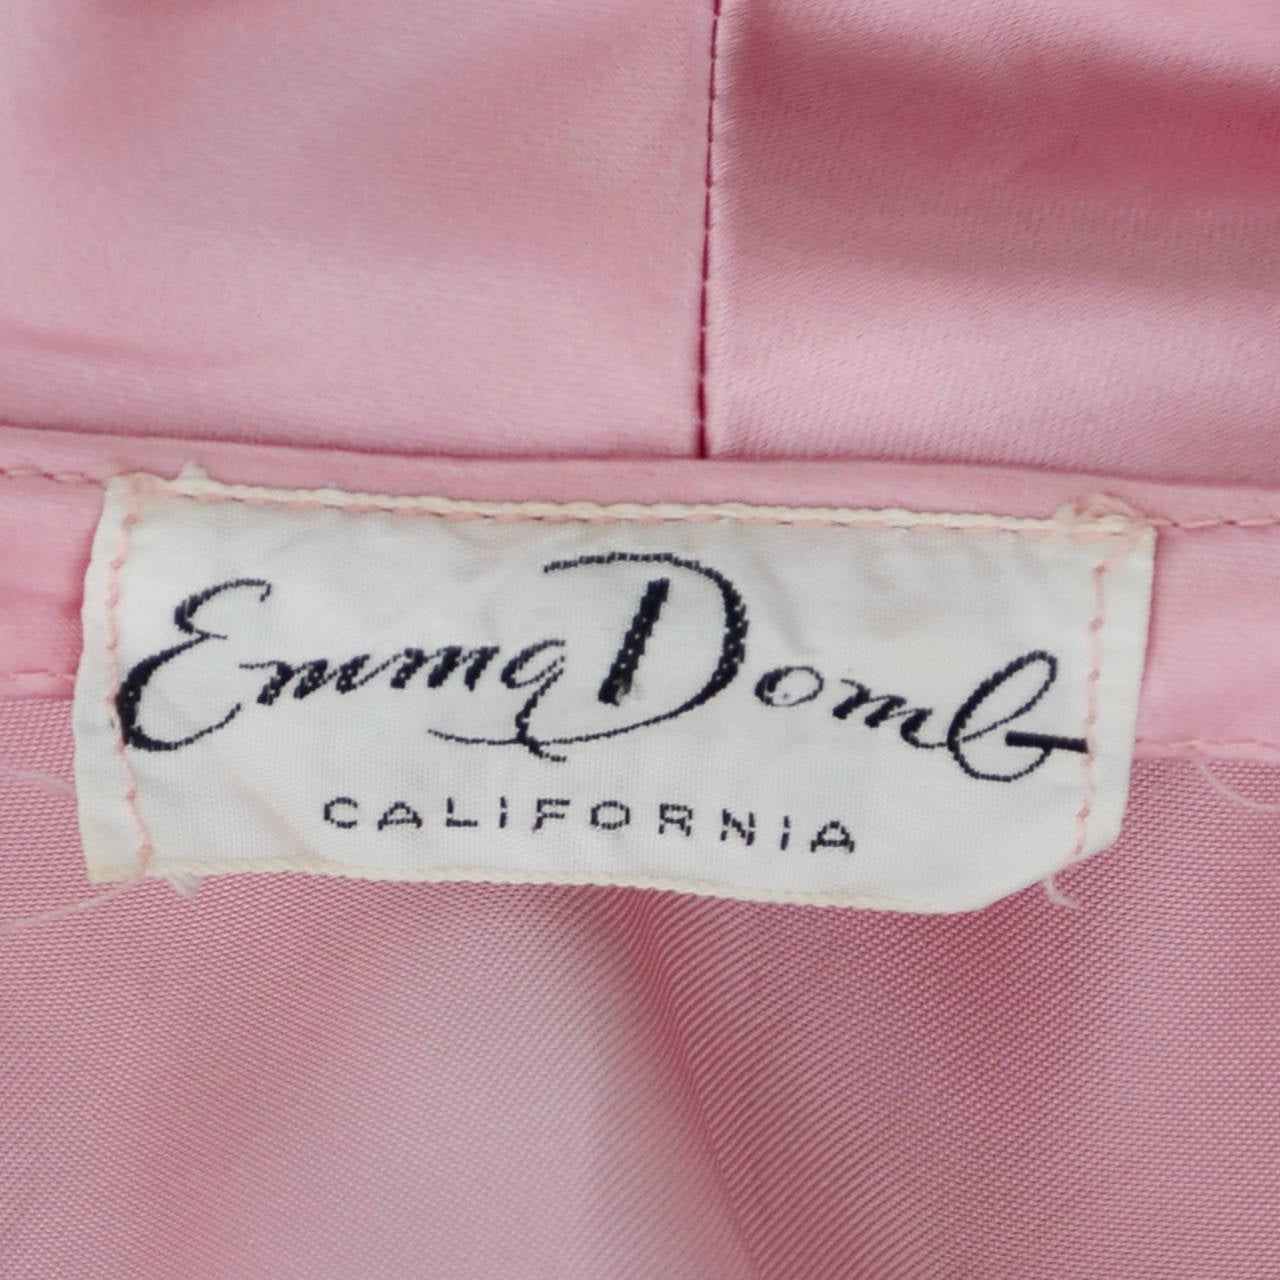 Emma Domb Formal Vintage Dress 1940s Slipper Satin Pink Evening Gown Bridal For Sale 2